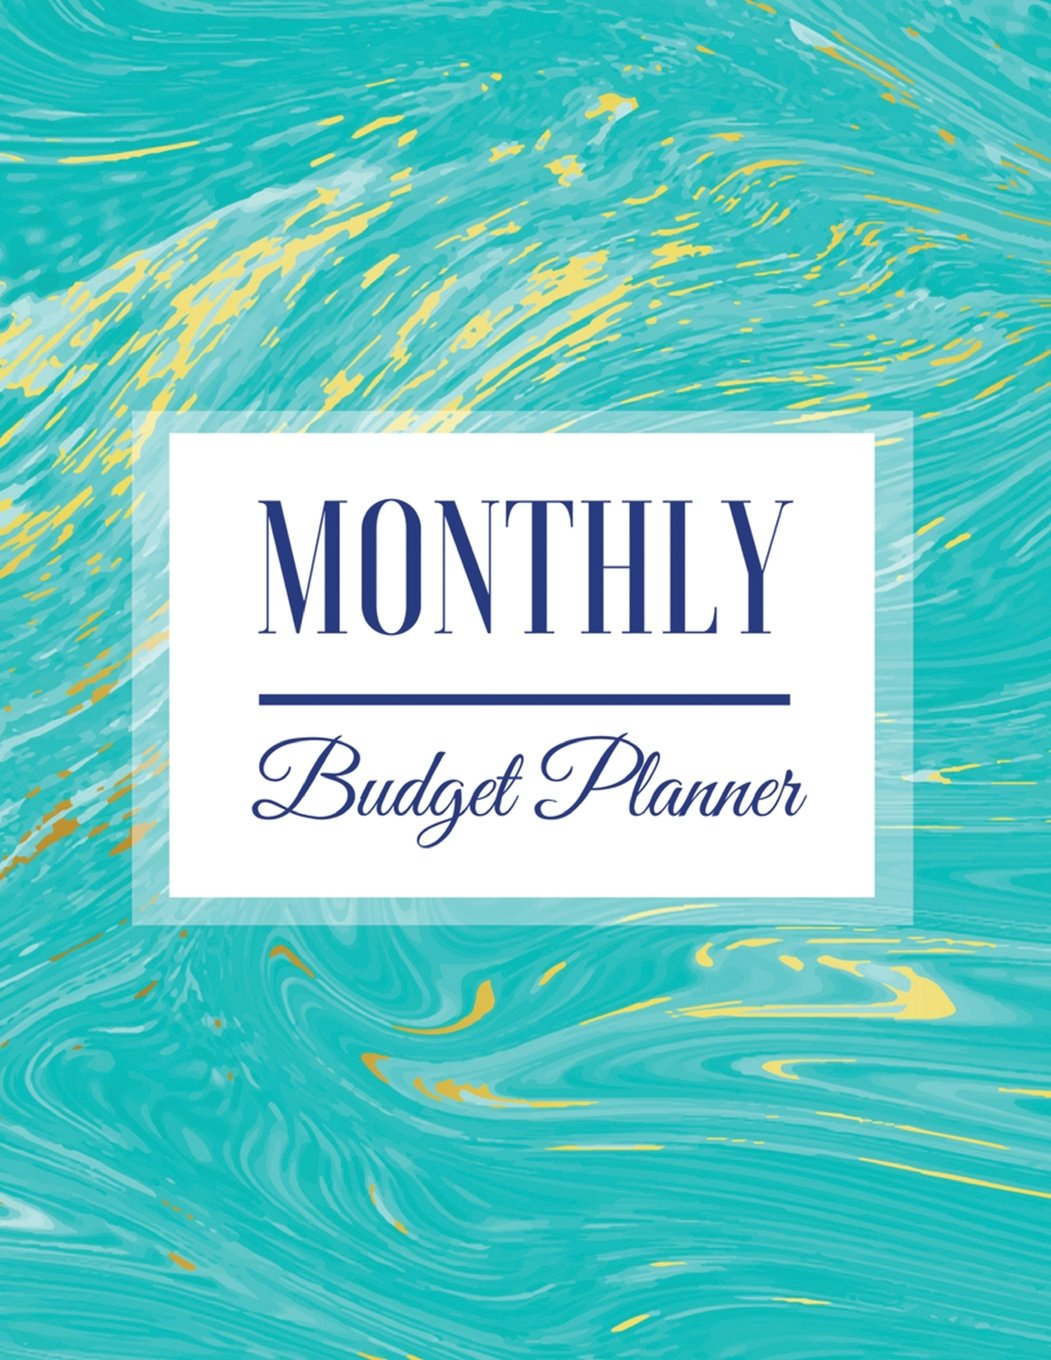 Monthly Budget Planner: Blue Marble Design Budget Planner Book With Calendar 2018-2019 Income List, Monthly Expense Categories and Weekly Expense ... Budget Planner and Bill Tracker) (Volume 44) ebook